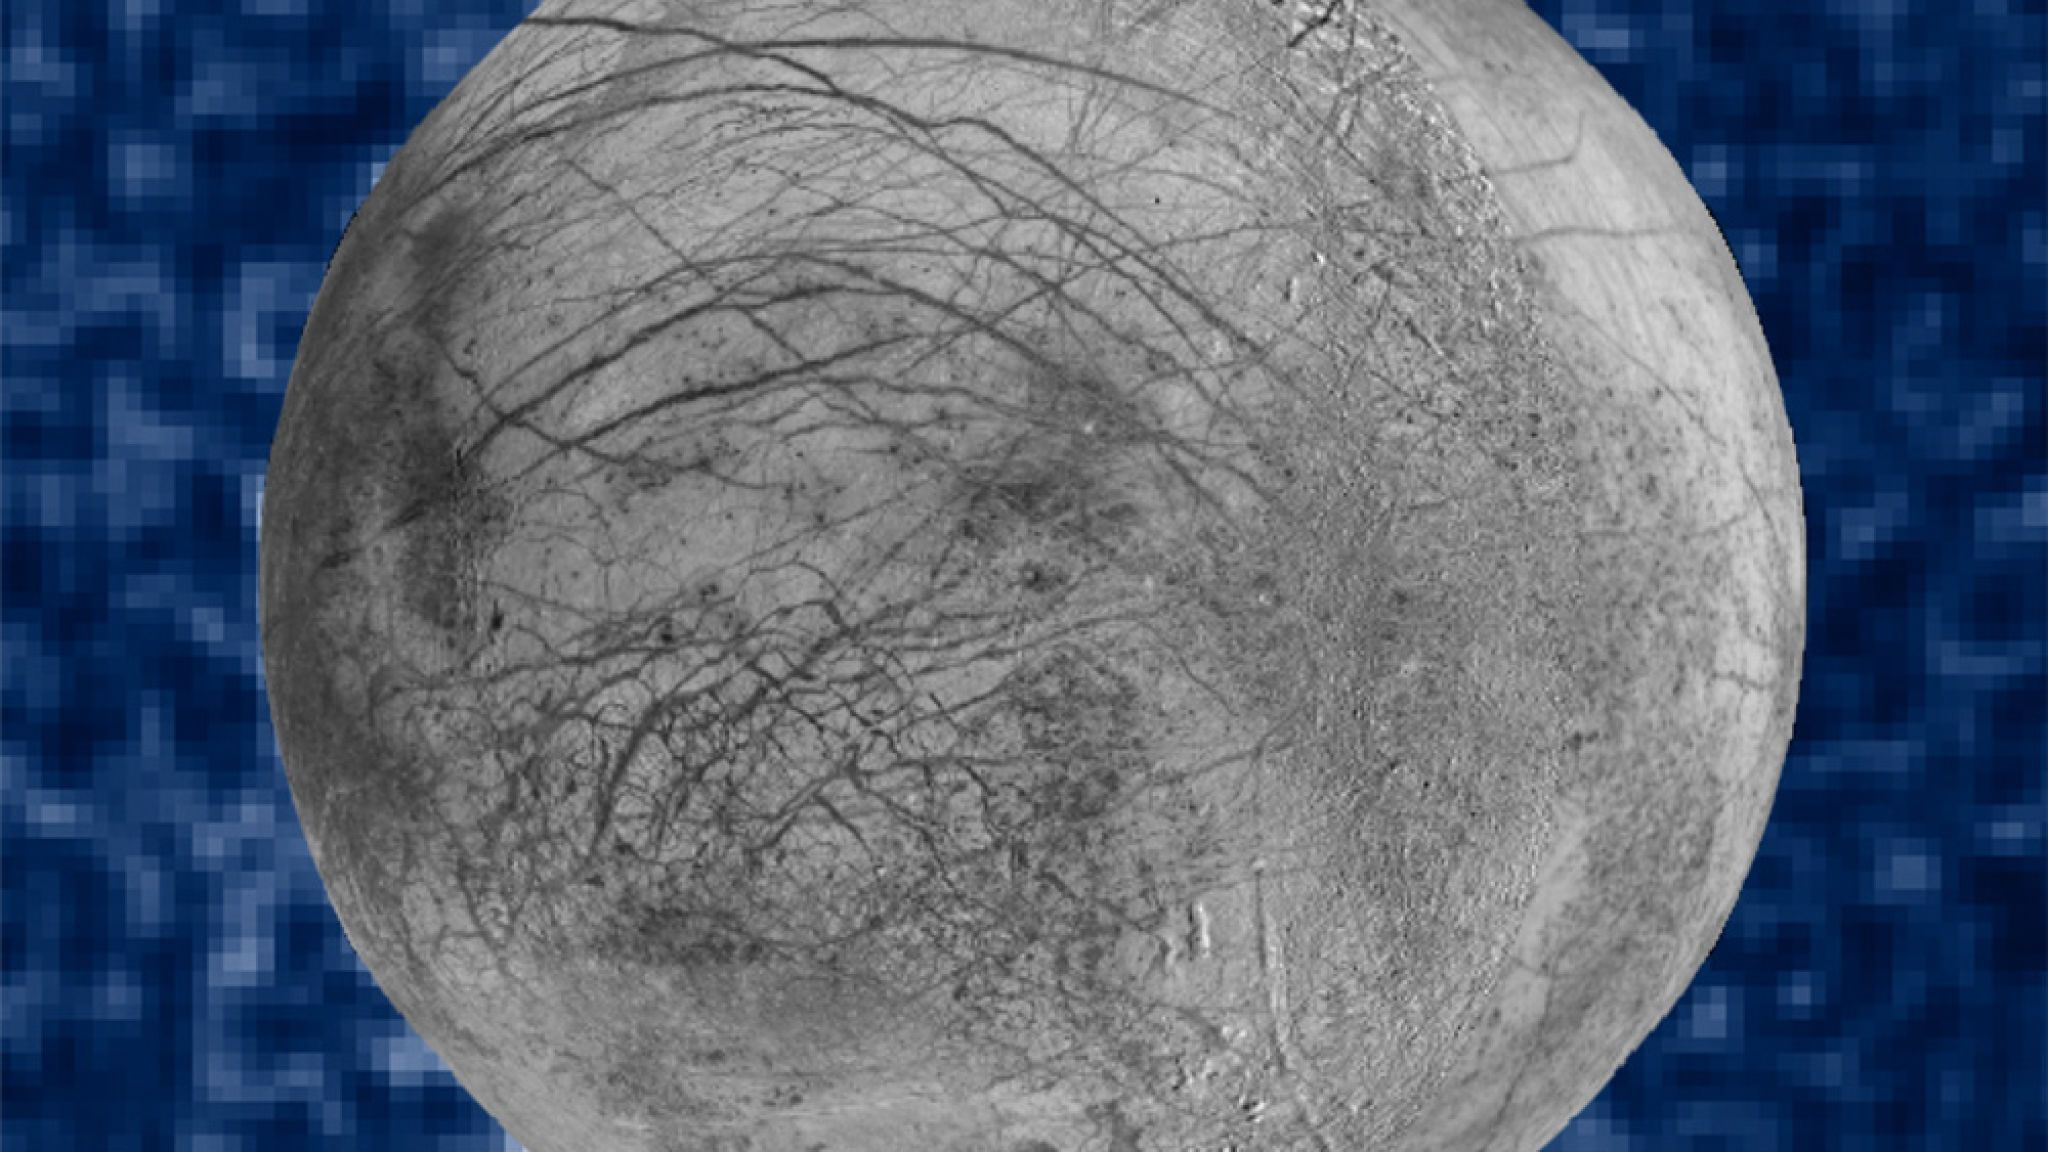 Europa has long been a source of intrigue for scientists